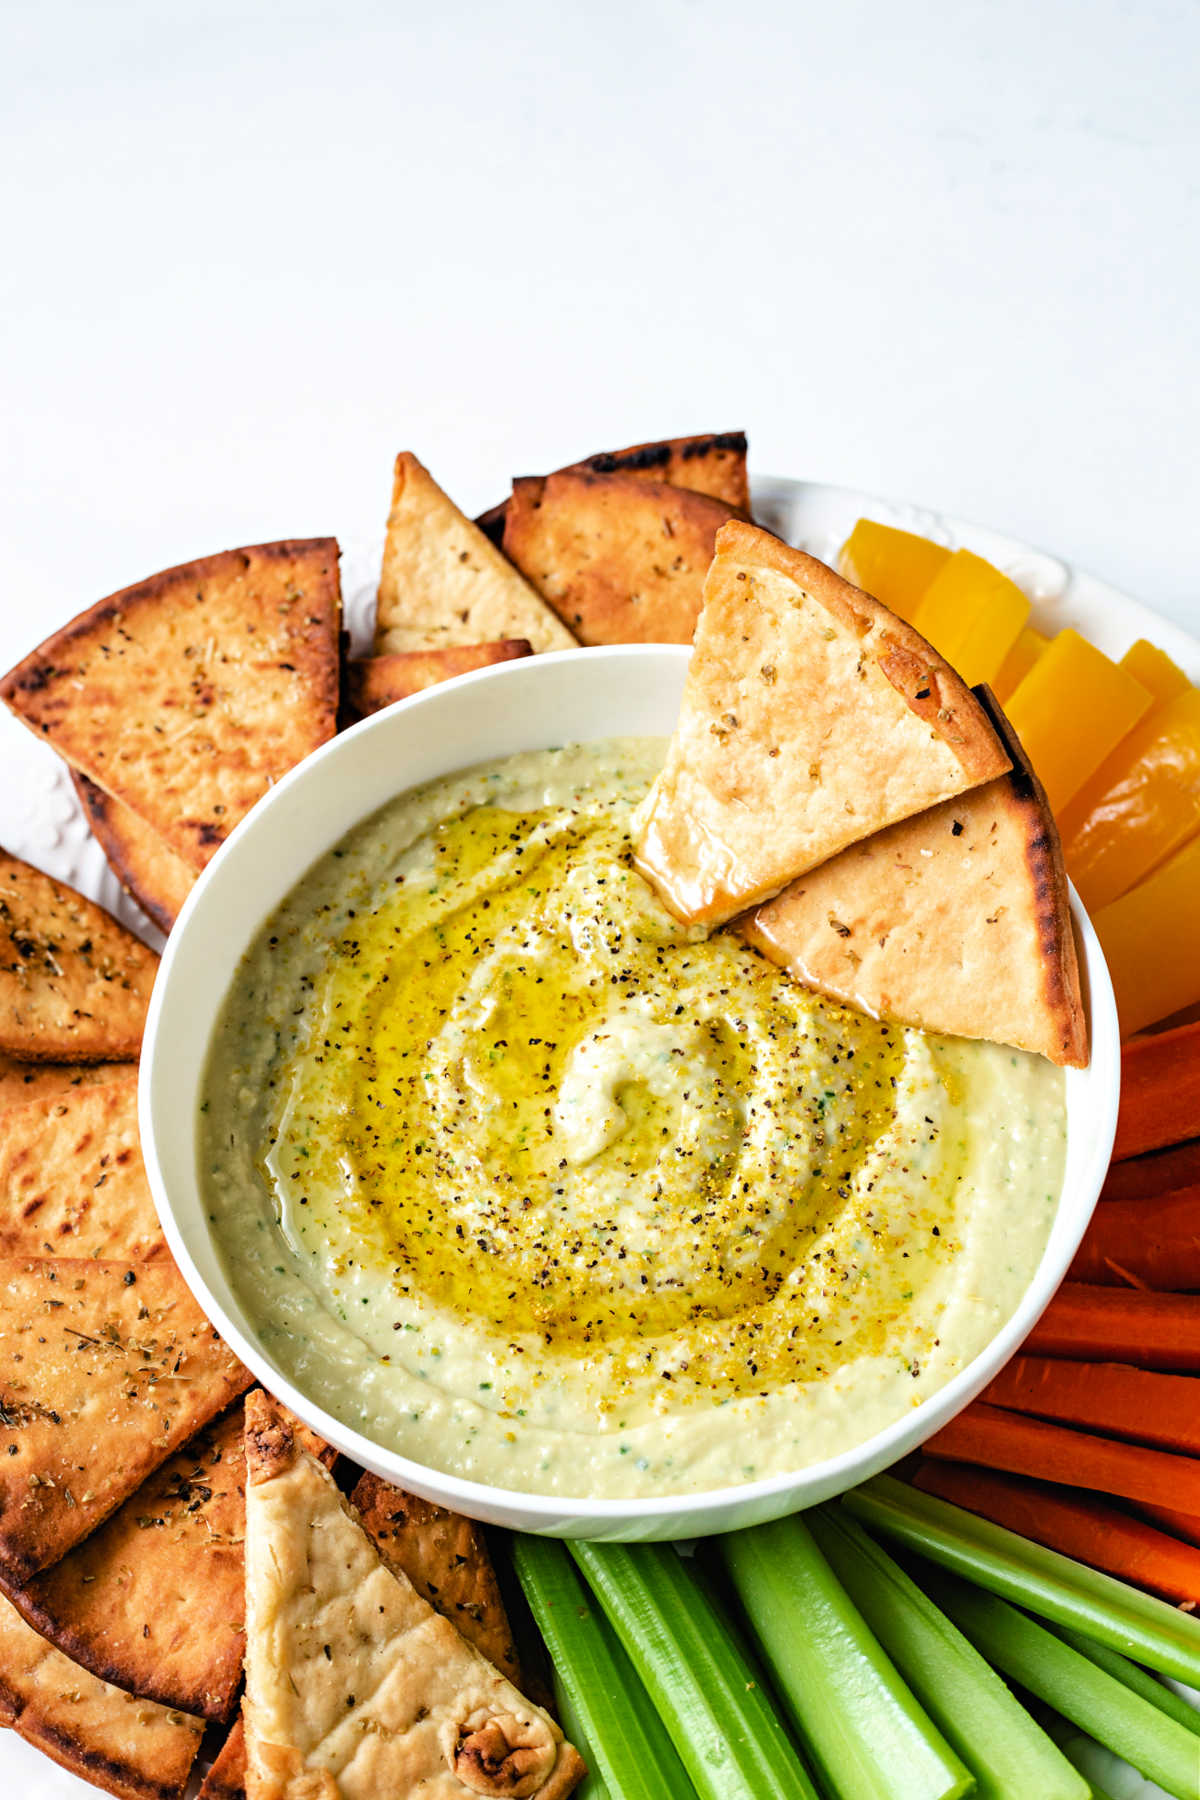 two baked pita chips nestled into a bowl of white bean hummus.